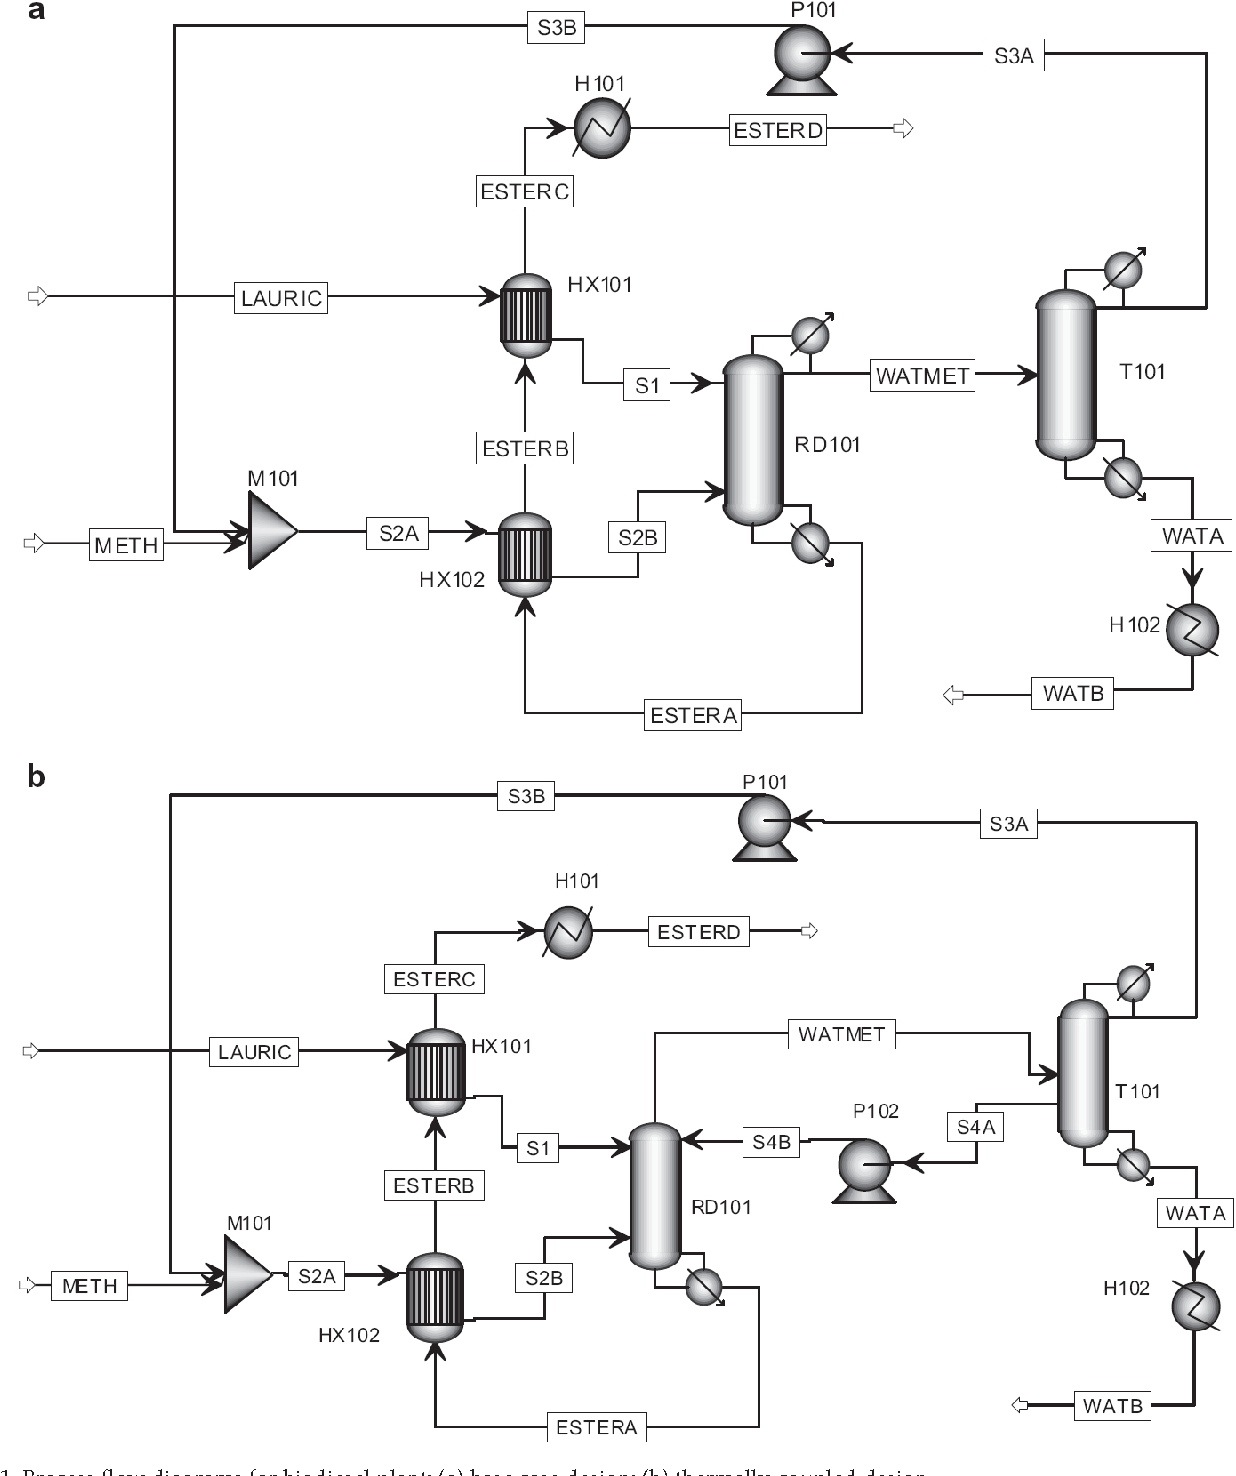 hight resolution of process flow diagrams for biodiesel plant a base case design